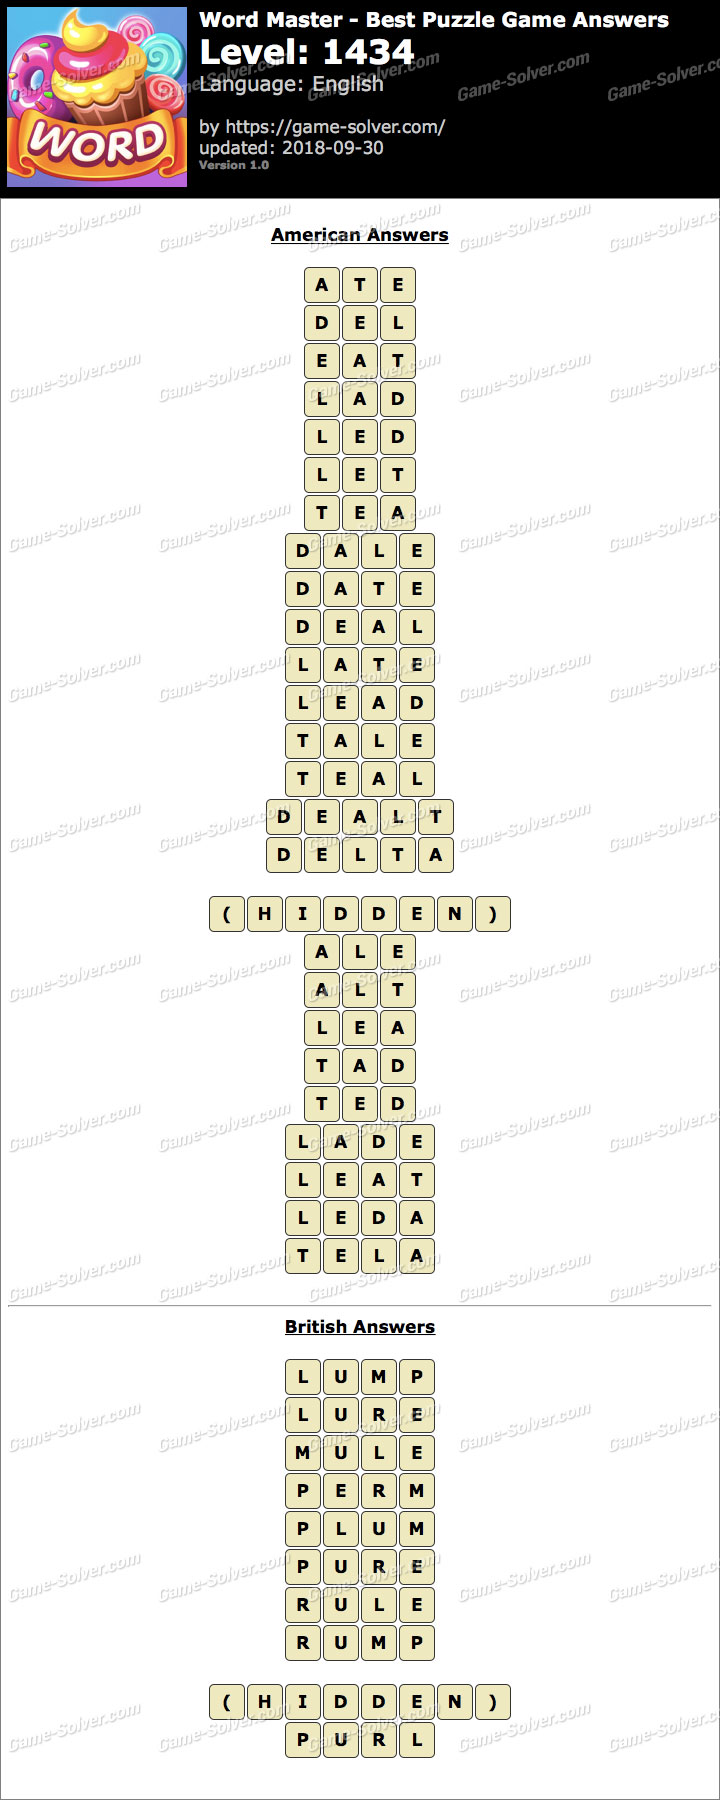 Word Master-Best Puzzle Game Level 1434 Answers